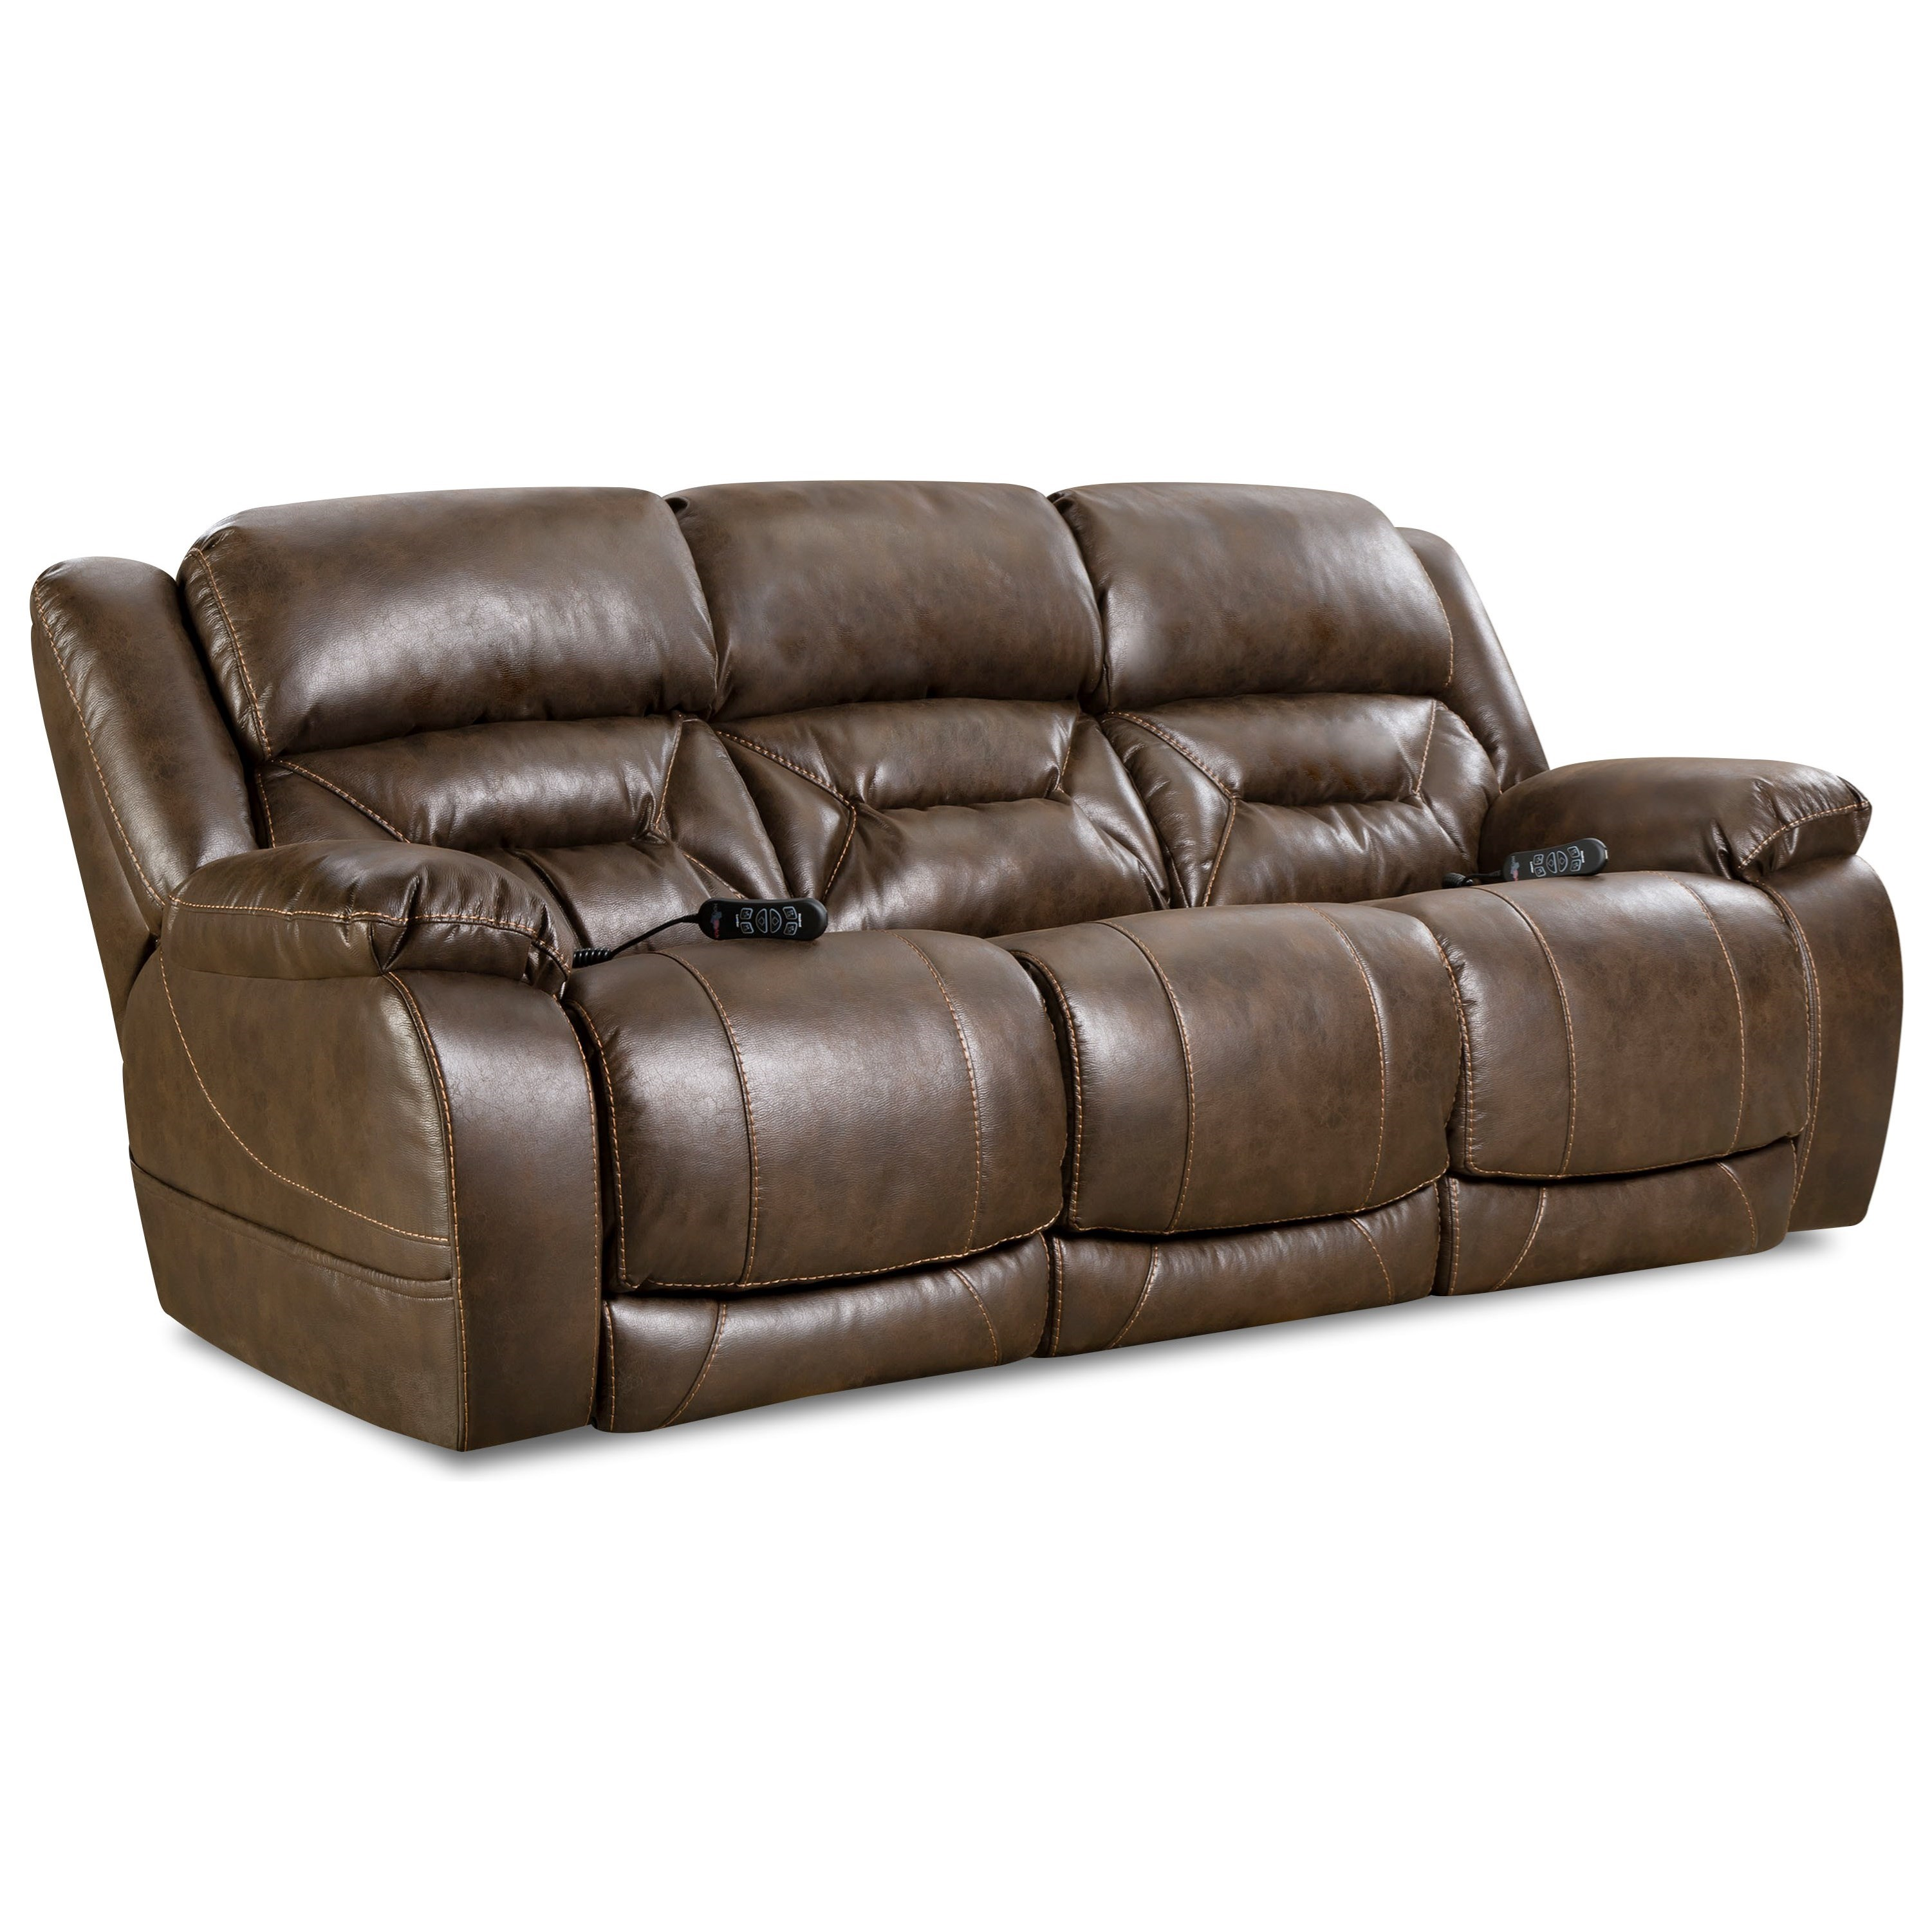 Enterprise Power Reclining Sofa by HomeStretch at Darvin Furniture